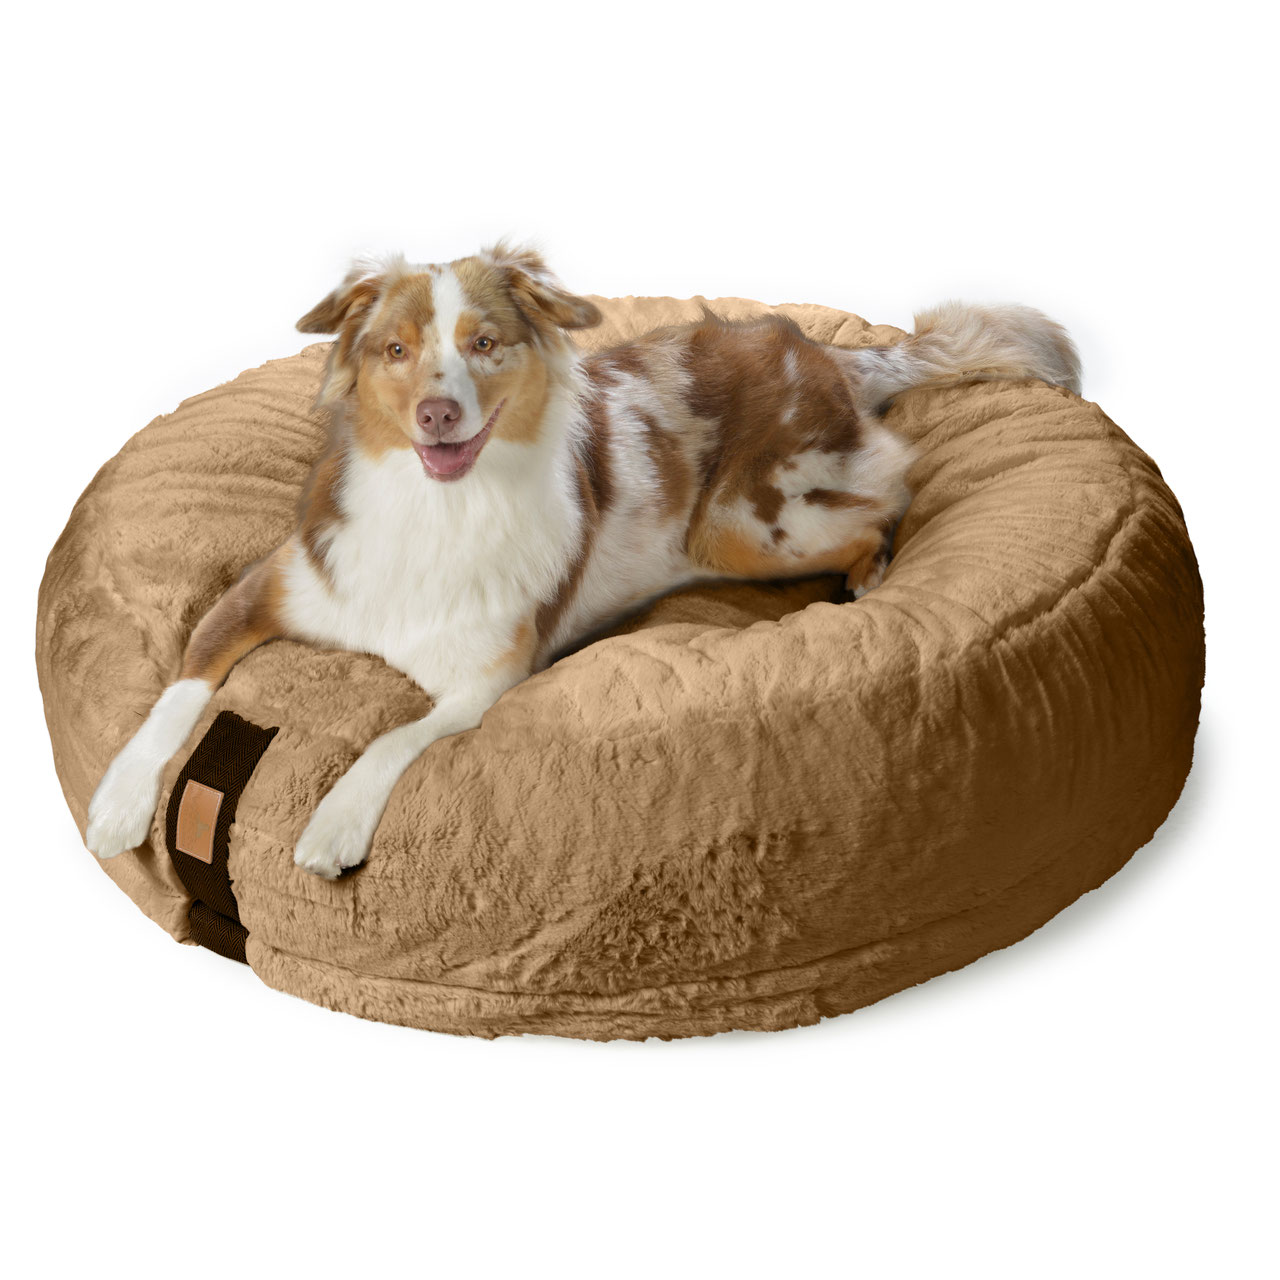 Full Size of Hundebett Flocke 125 Cm Orthopdisches Hyggebed Xxl Bett 120 Breit Regal 25 Tief Sofa Sitzhöhe 55 30 60 Liegehöhe 50 80 Hoch 20 Tiefe 40 Wohnzimmer Hundebett Flocke 125 Cm